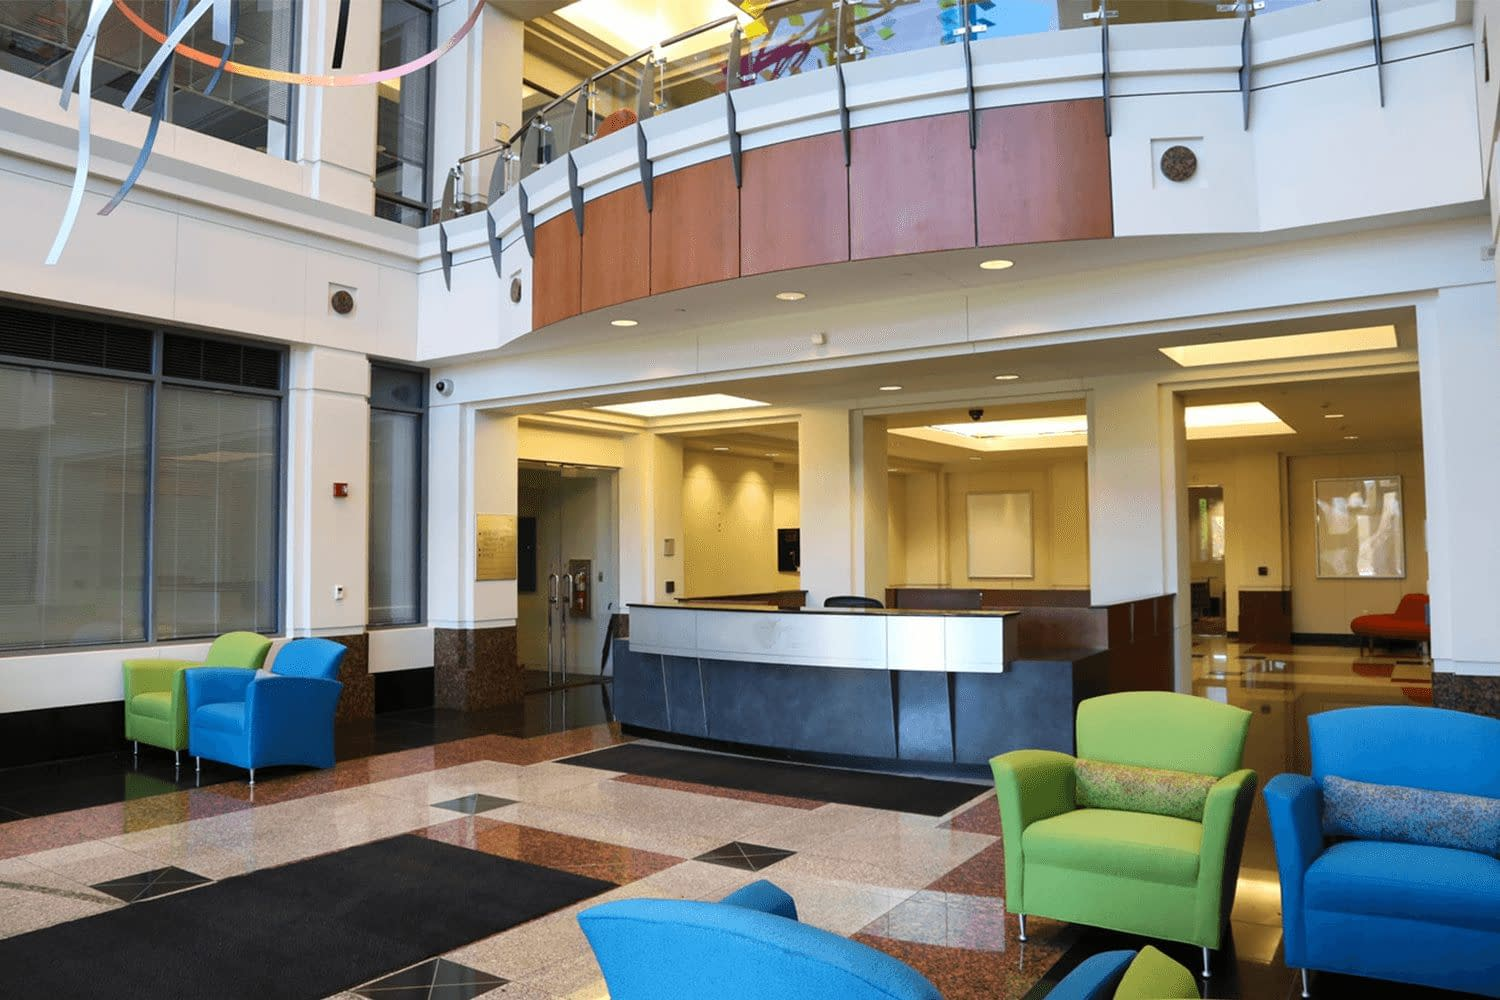 Lobby area with bright and colorful furniture